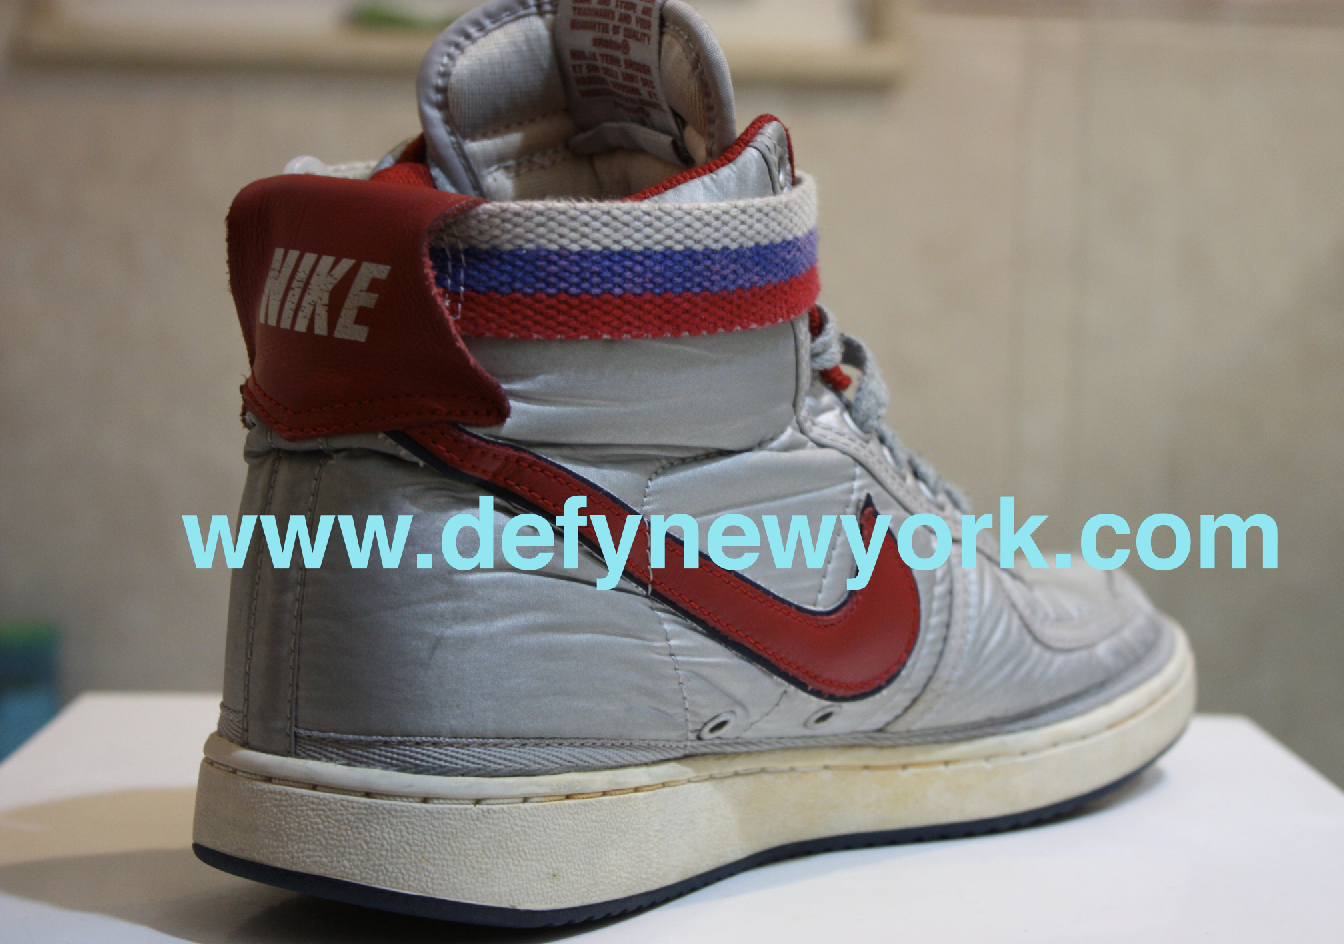 best authentic 08bf4 23466 Get Your Vandal On The Nike Vandal High Supreme Metallic Sil